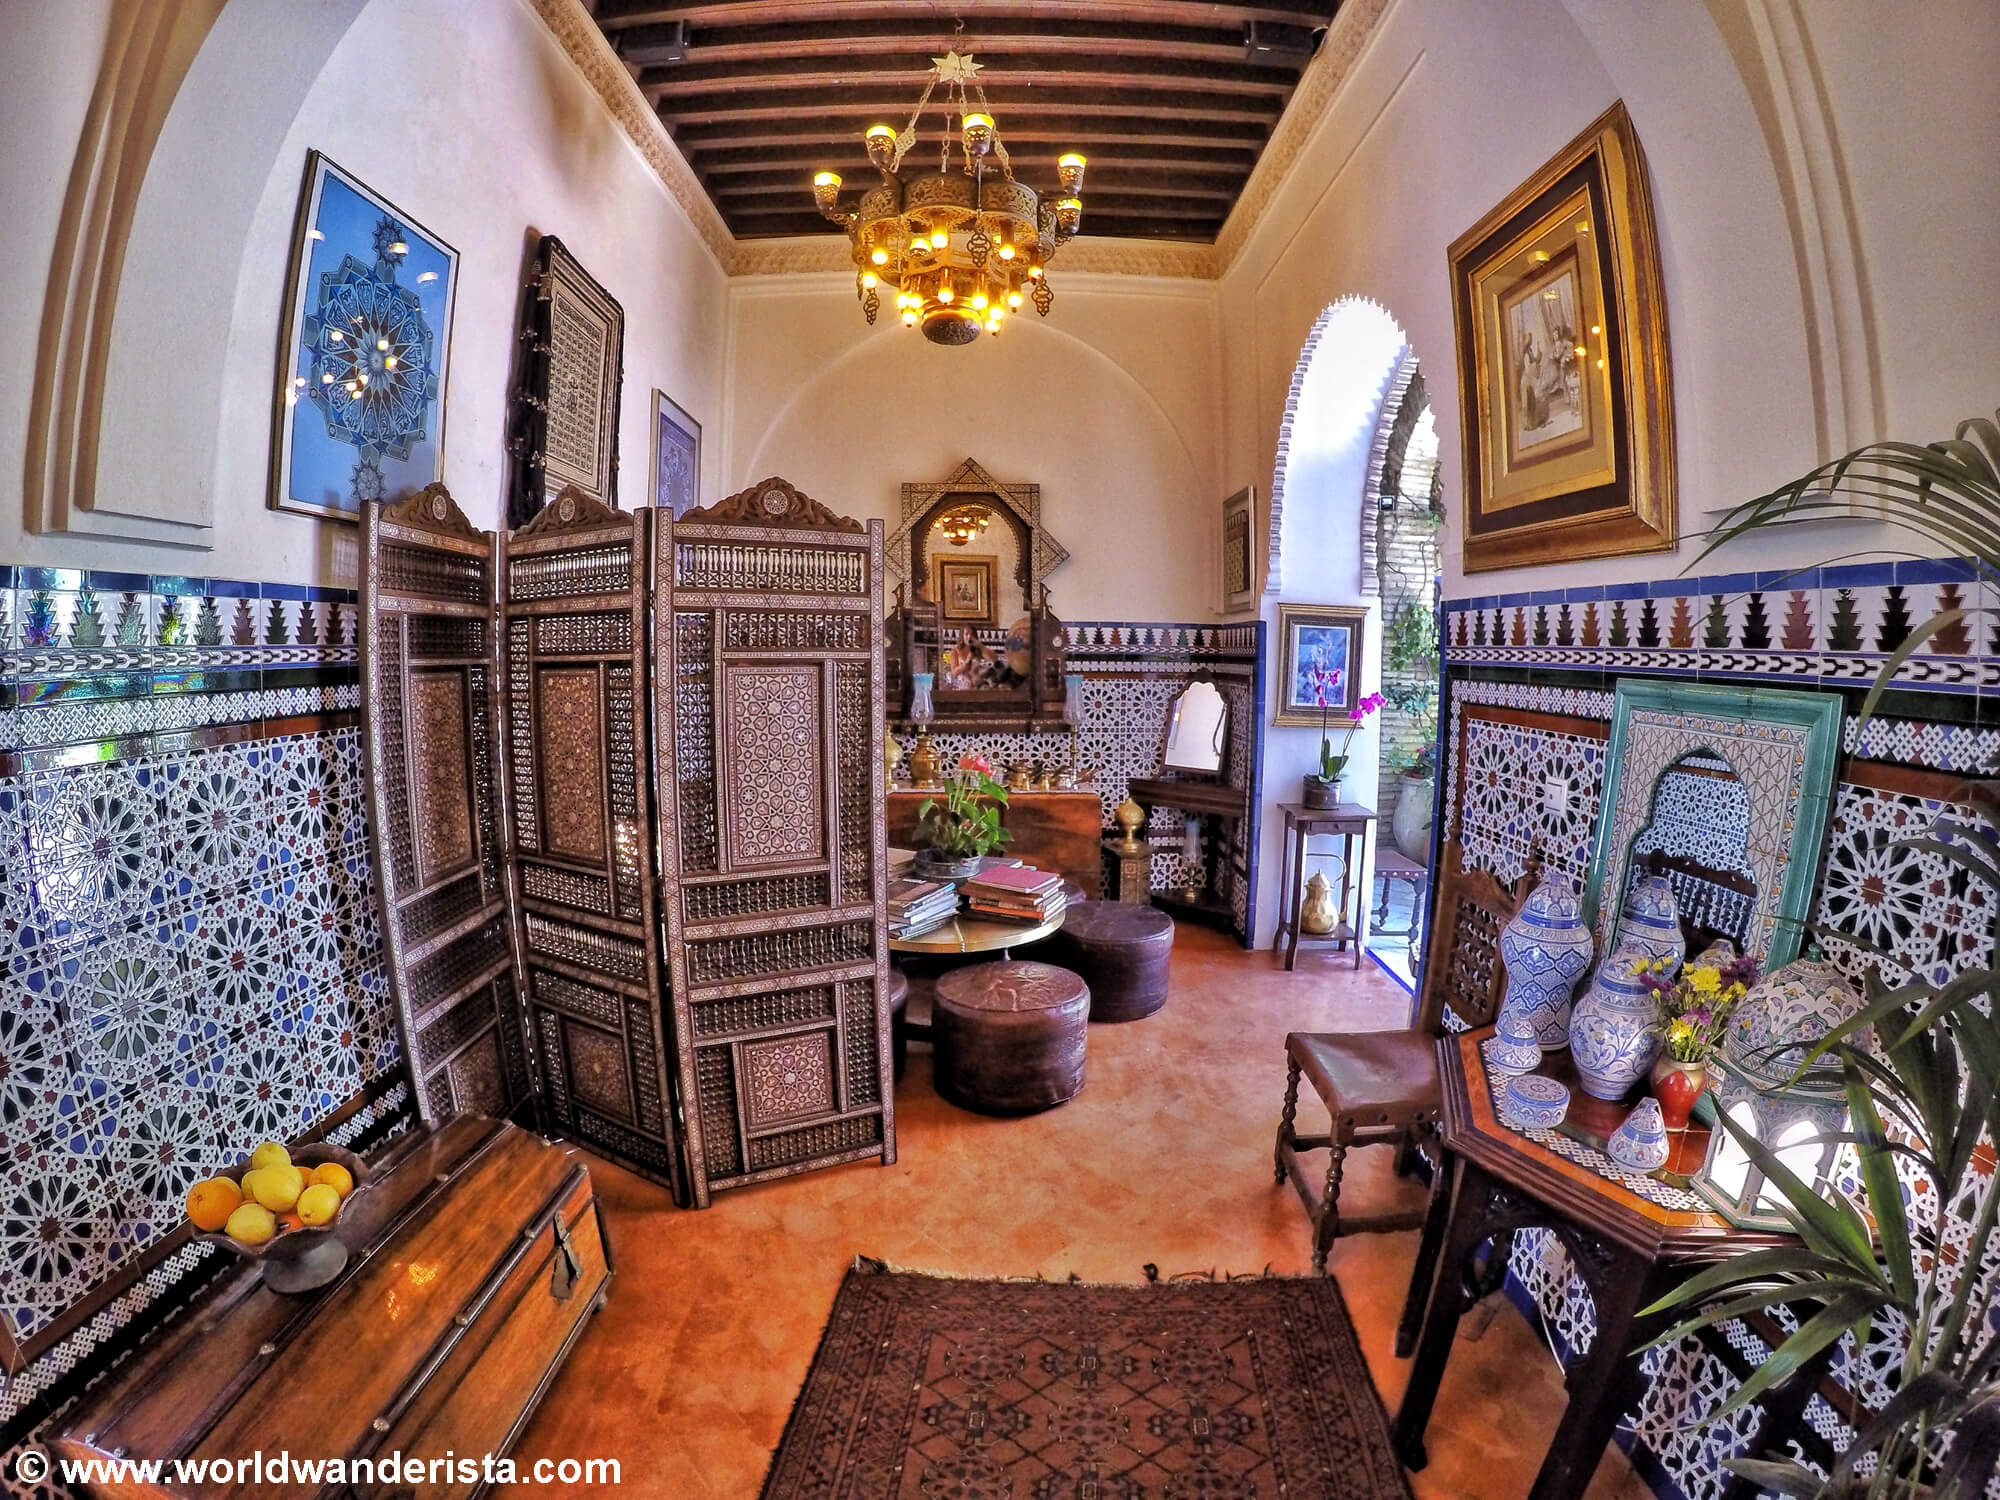 Casa Andalusi In Cordoba A True Hidden Gem World Wanderista